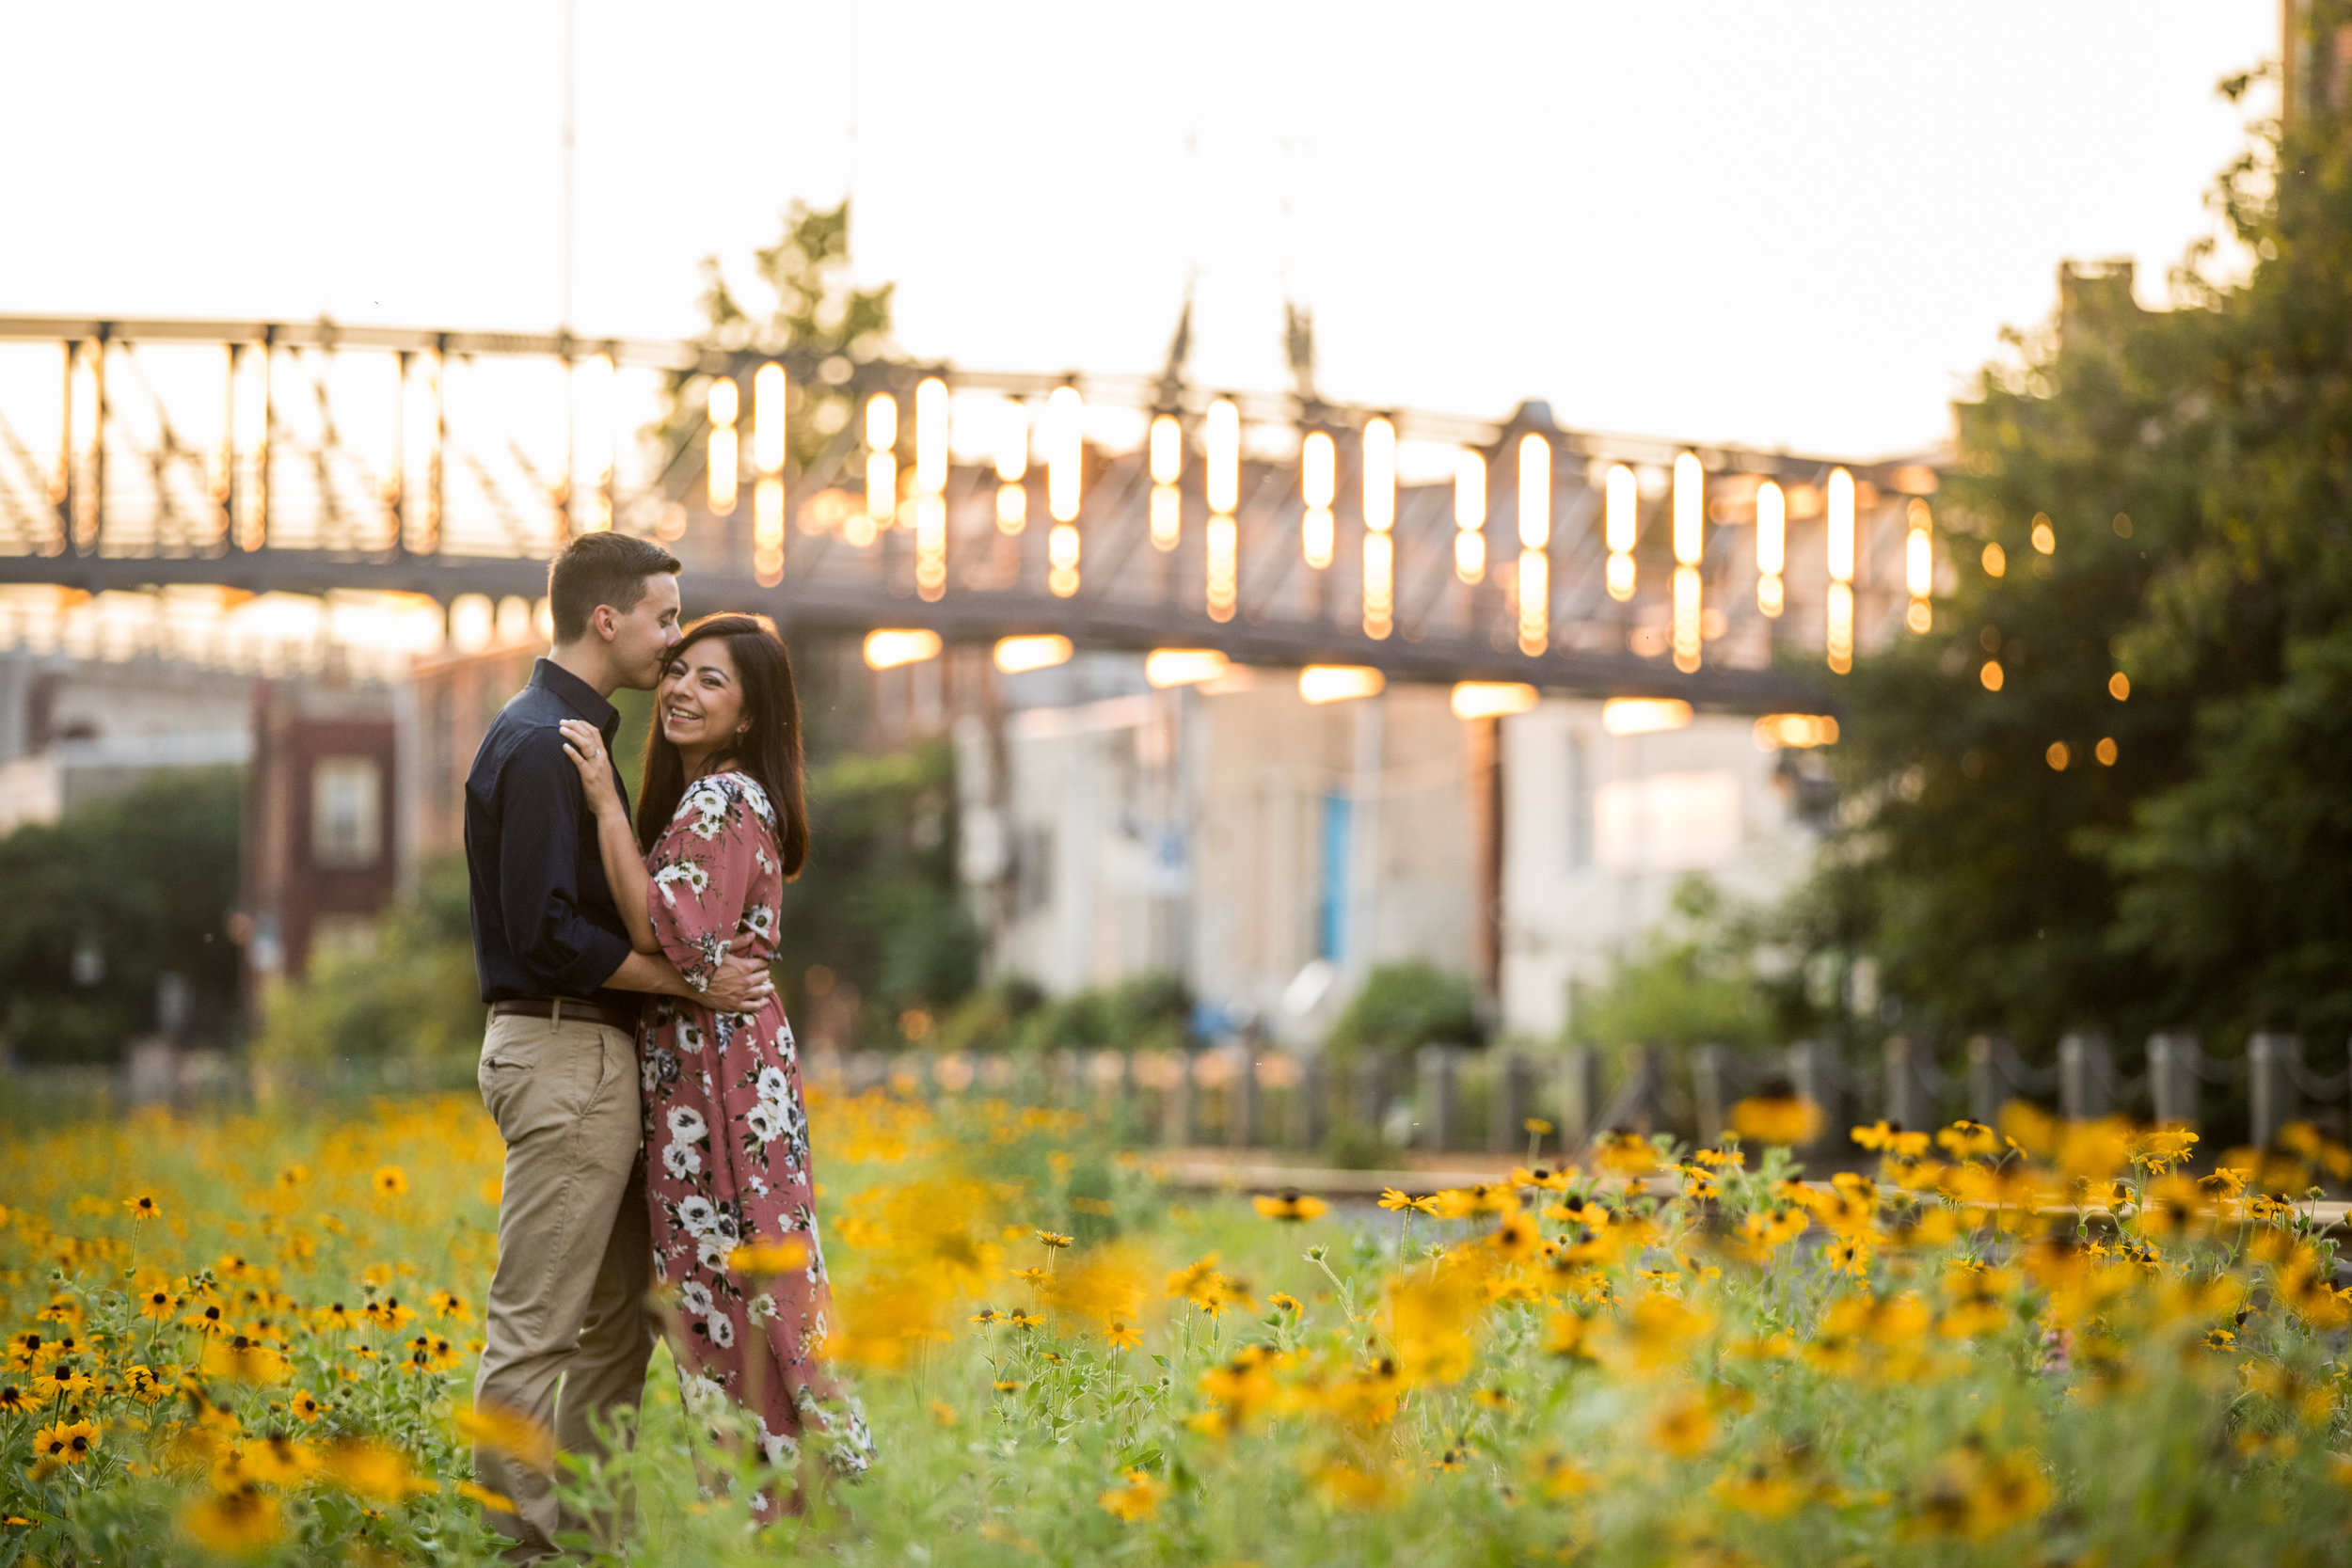 Paula and Frankie found a field of gorgeous sunflowers at their Manayunk engagement session.